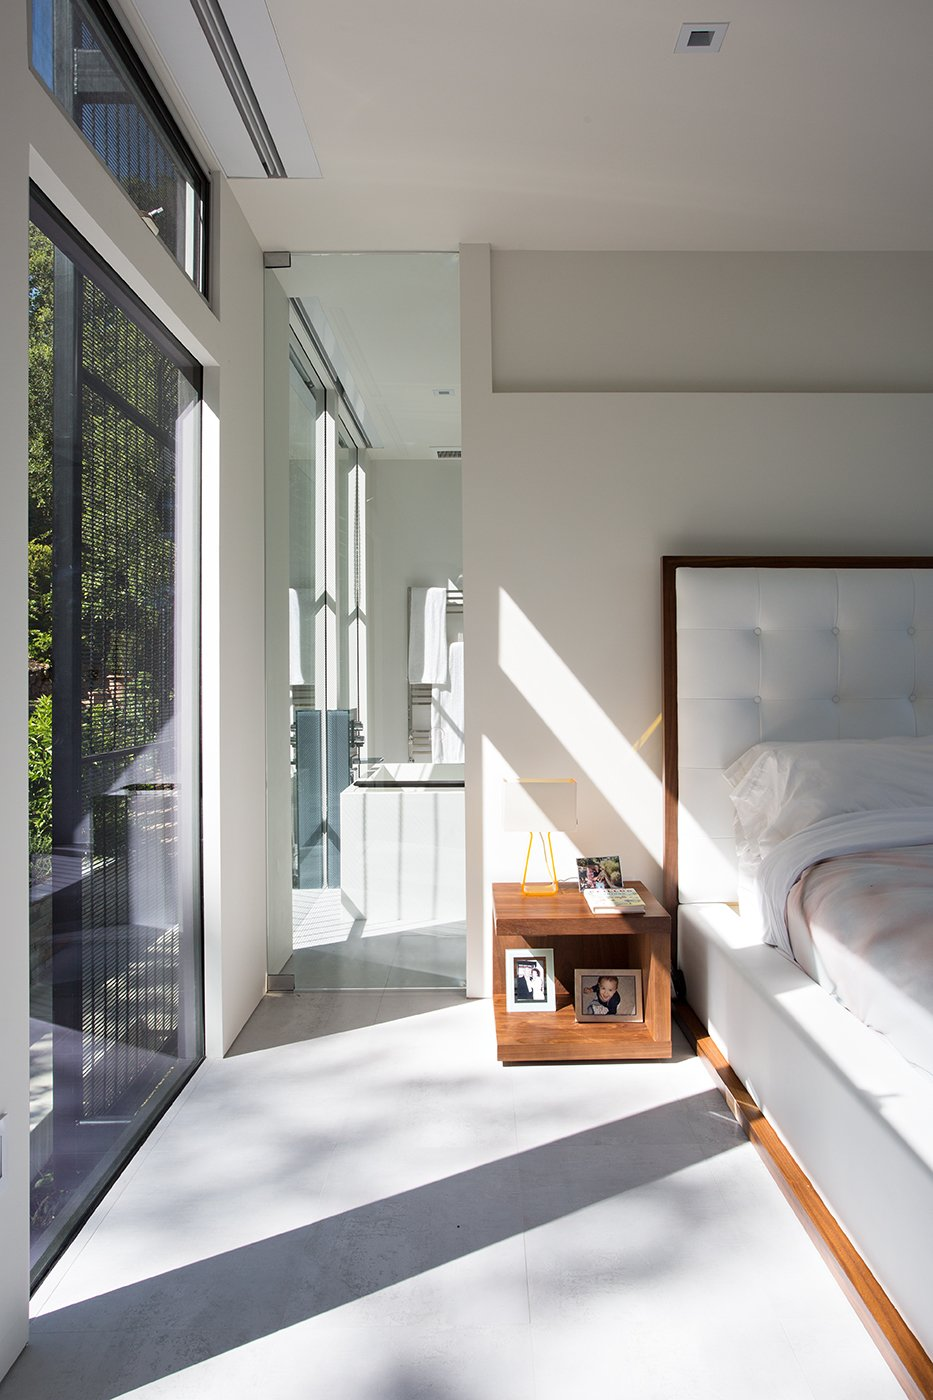 Bedroom, Ceiling Lighting, Bed, and Concrete Floor Light floods the second floor master bedroom, and floor-to-ceiling windows are buffered by adjacent steel mesh wall. A Modloft Ludlow platform bed anchors the room, and Pablo Designs bedside table lamps delicately punctuate the minimal space.  Bedroom